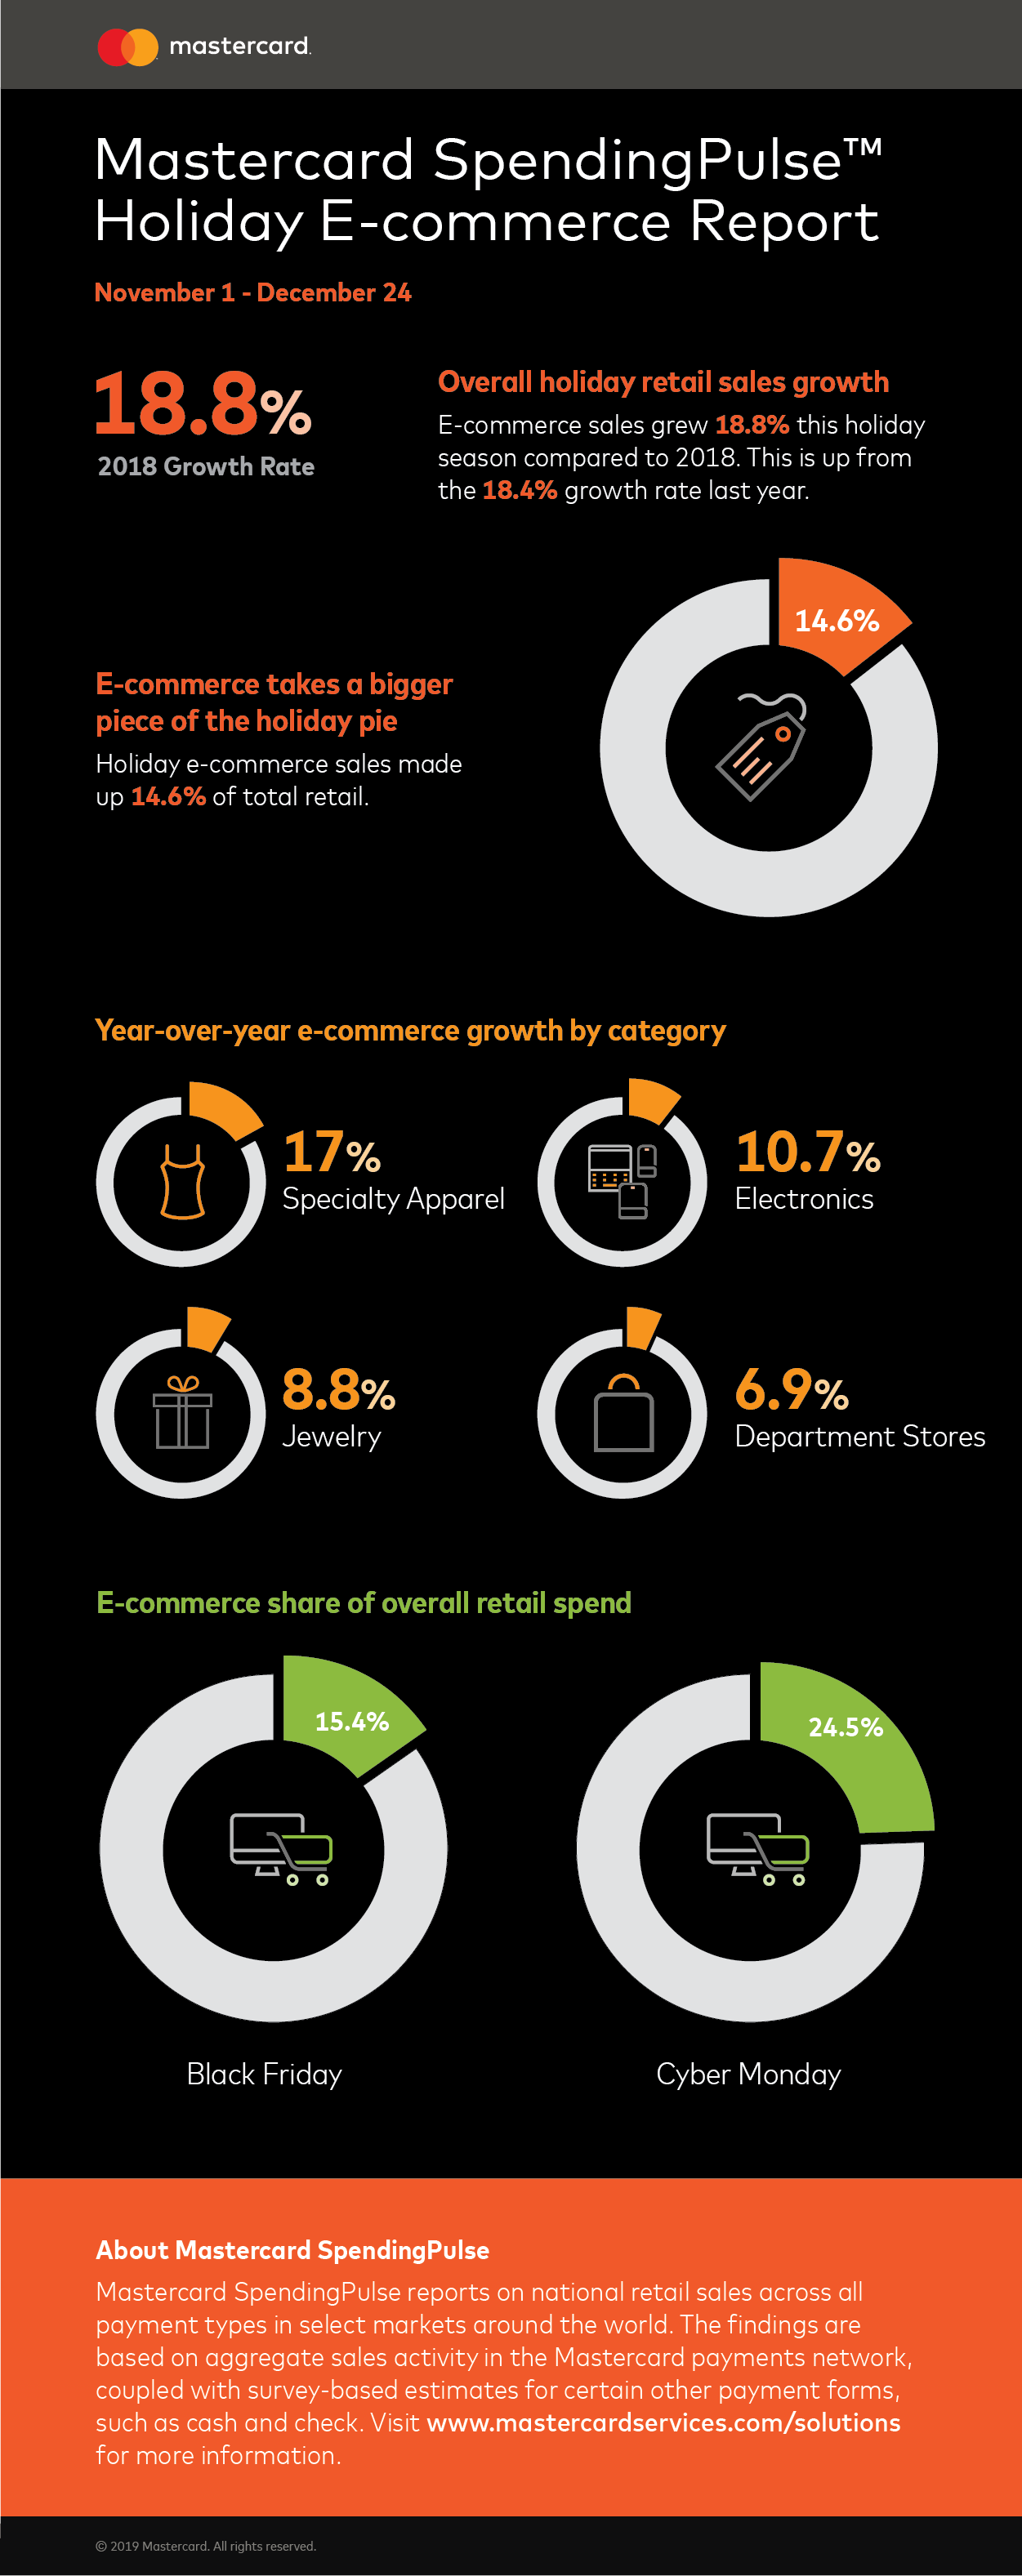 Mastercard SpendingPulse: U.S. Retail Sales Grew 3.4 Percent This Holiday Season - Brand Spur